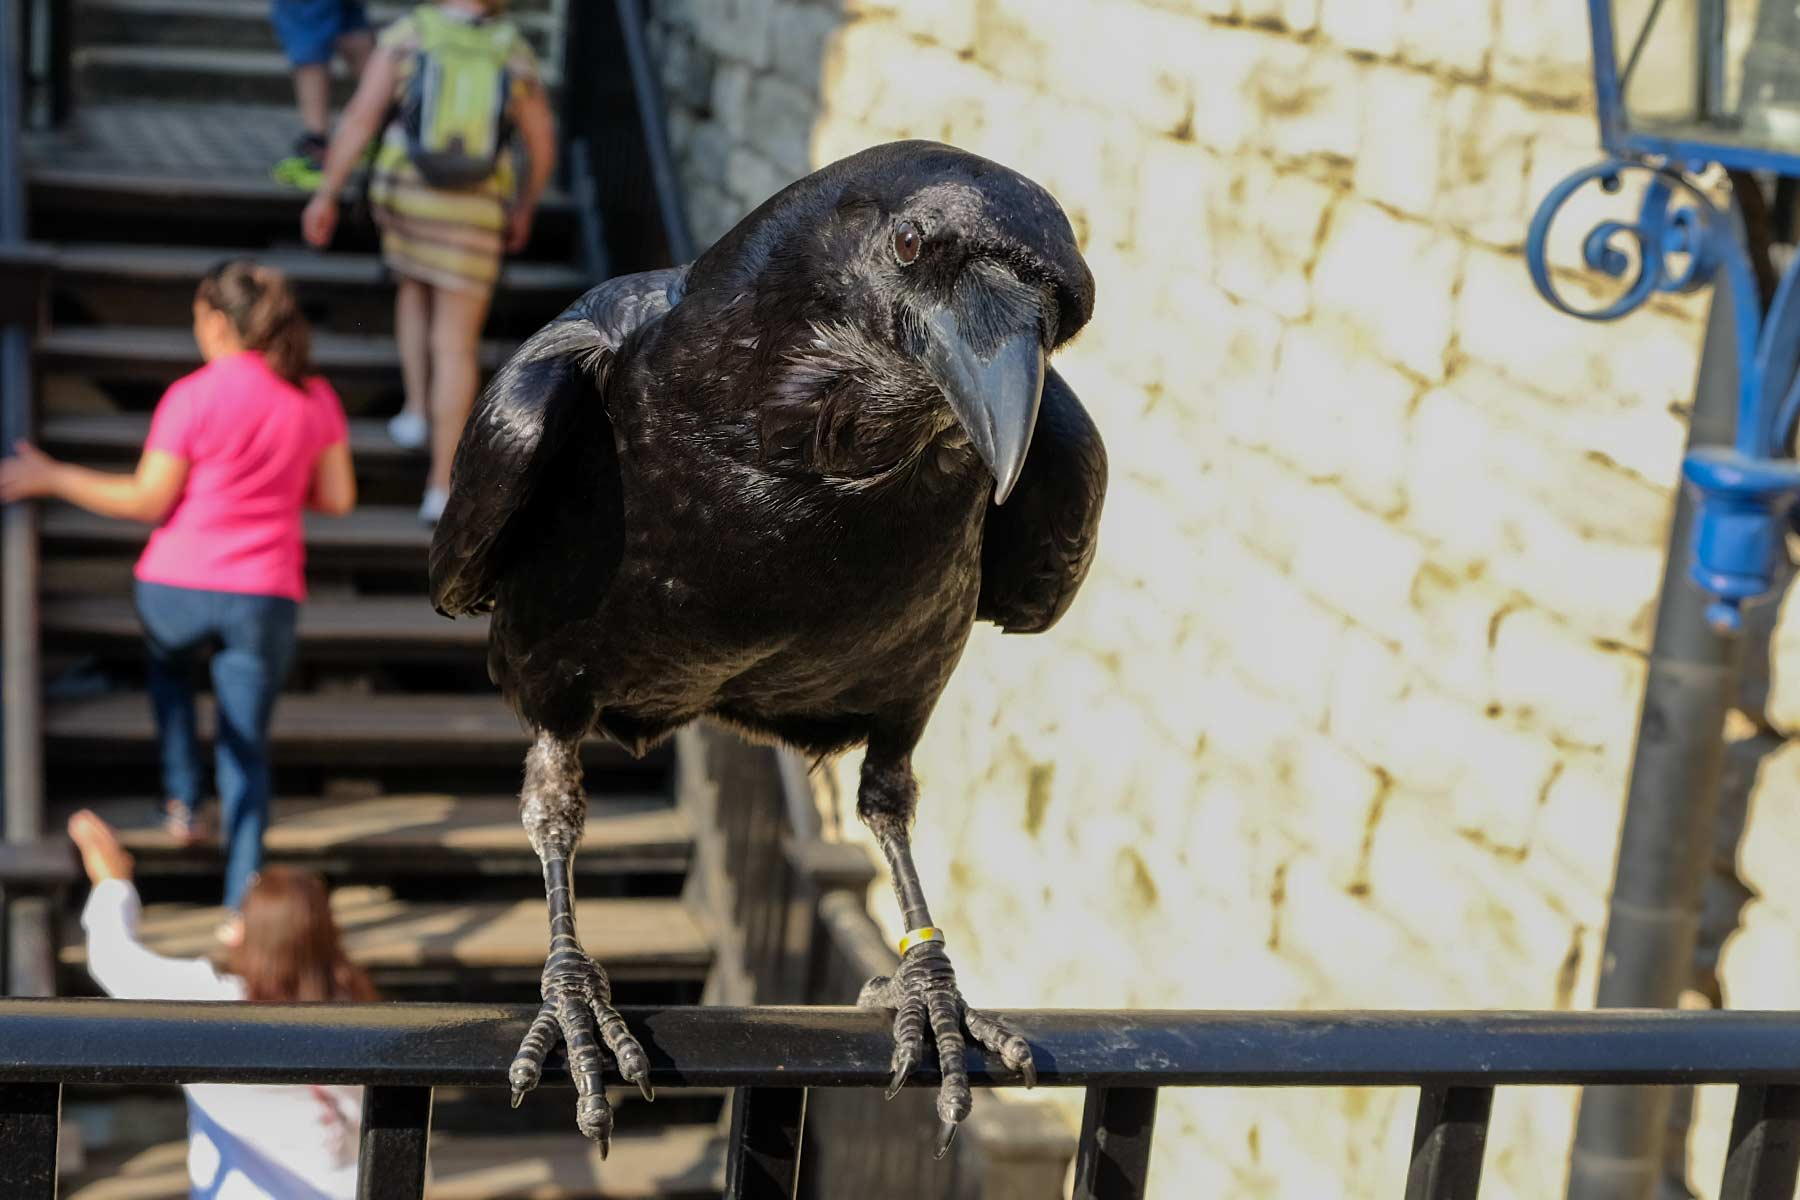 Rabe im Tower of London in London, England